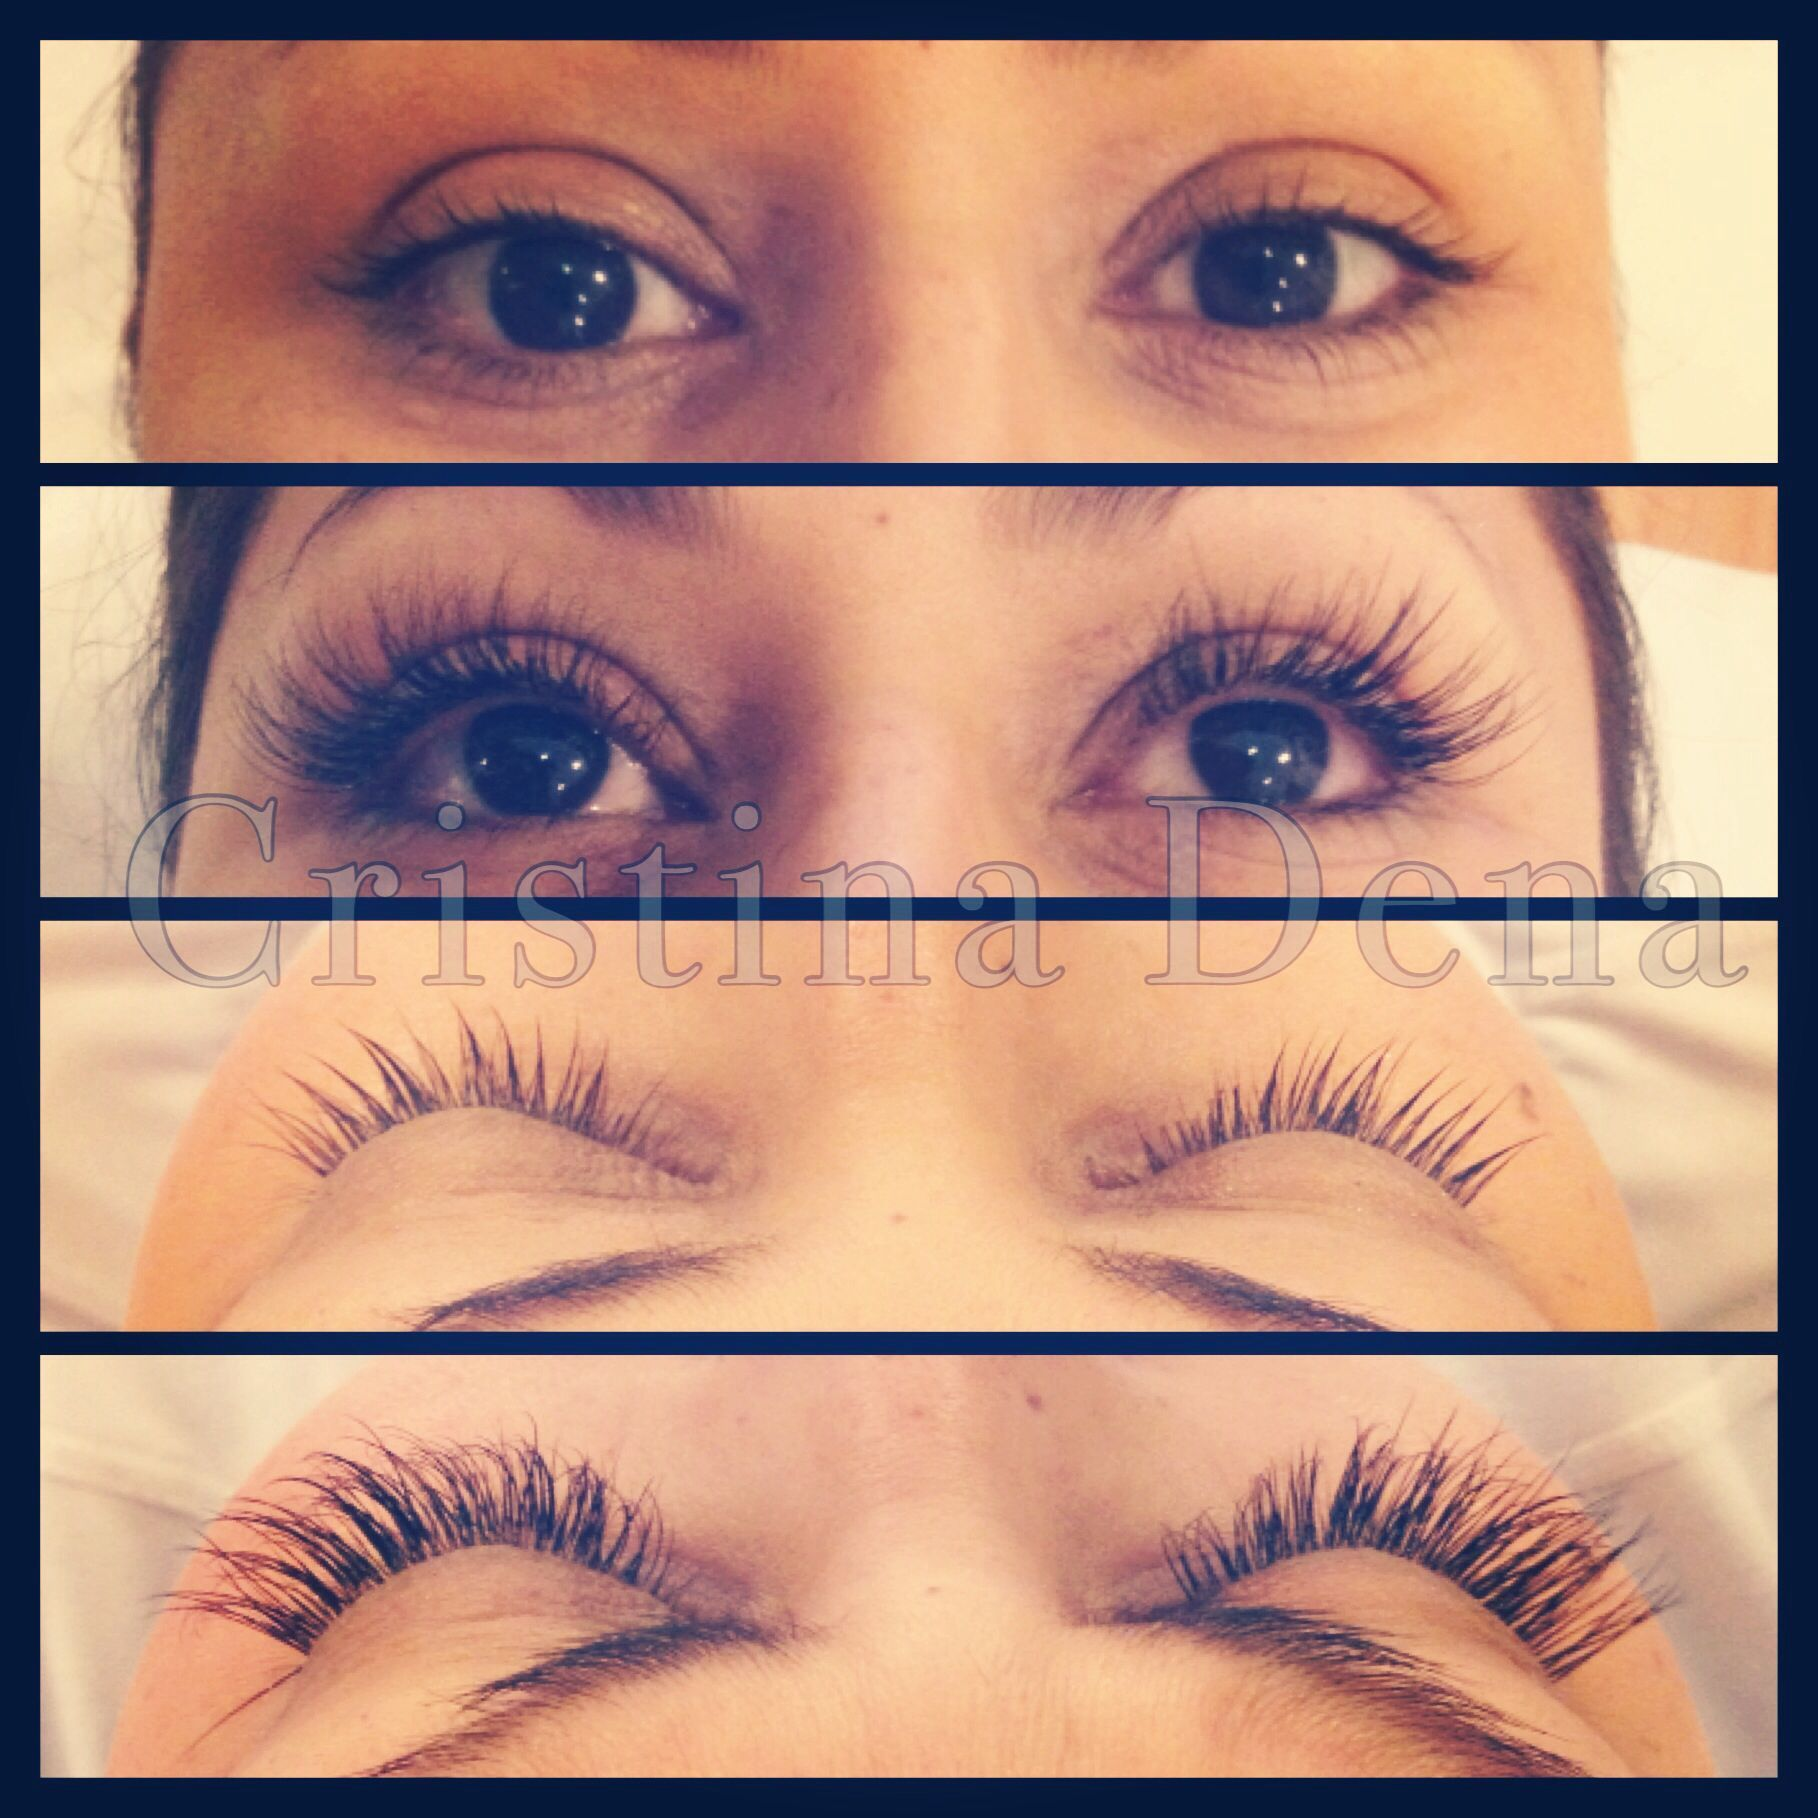 Eyelash extensions before and after i am getting this